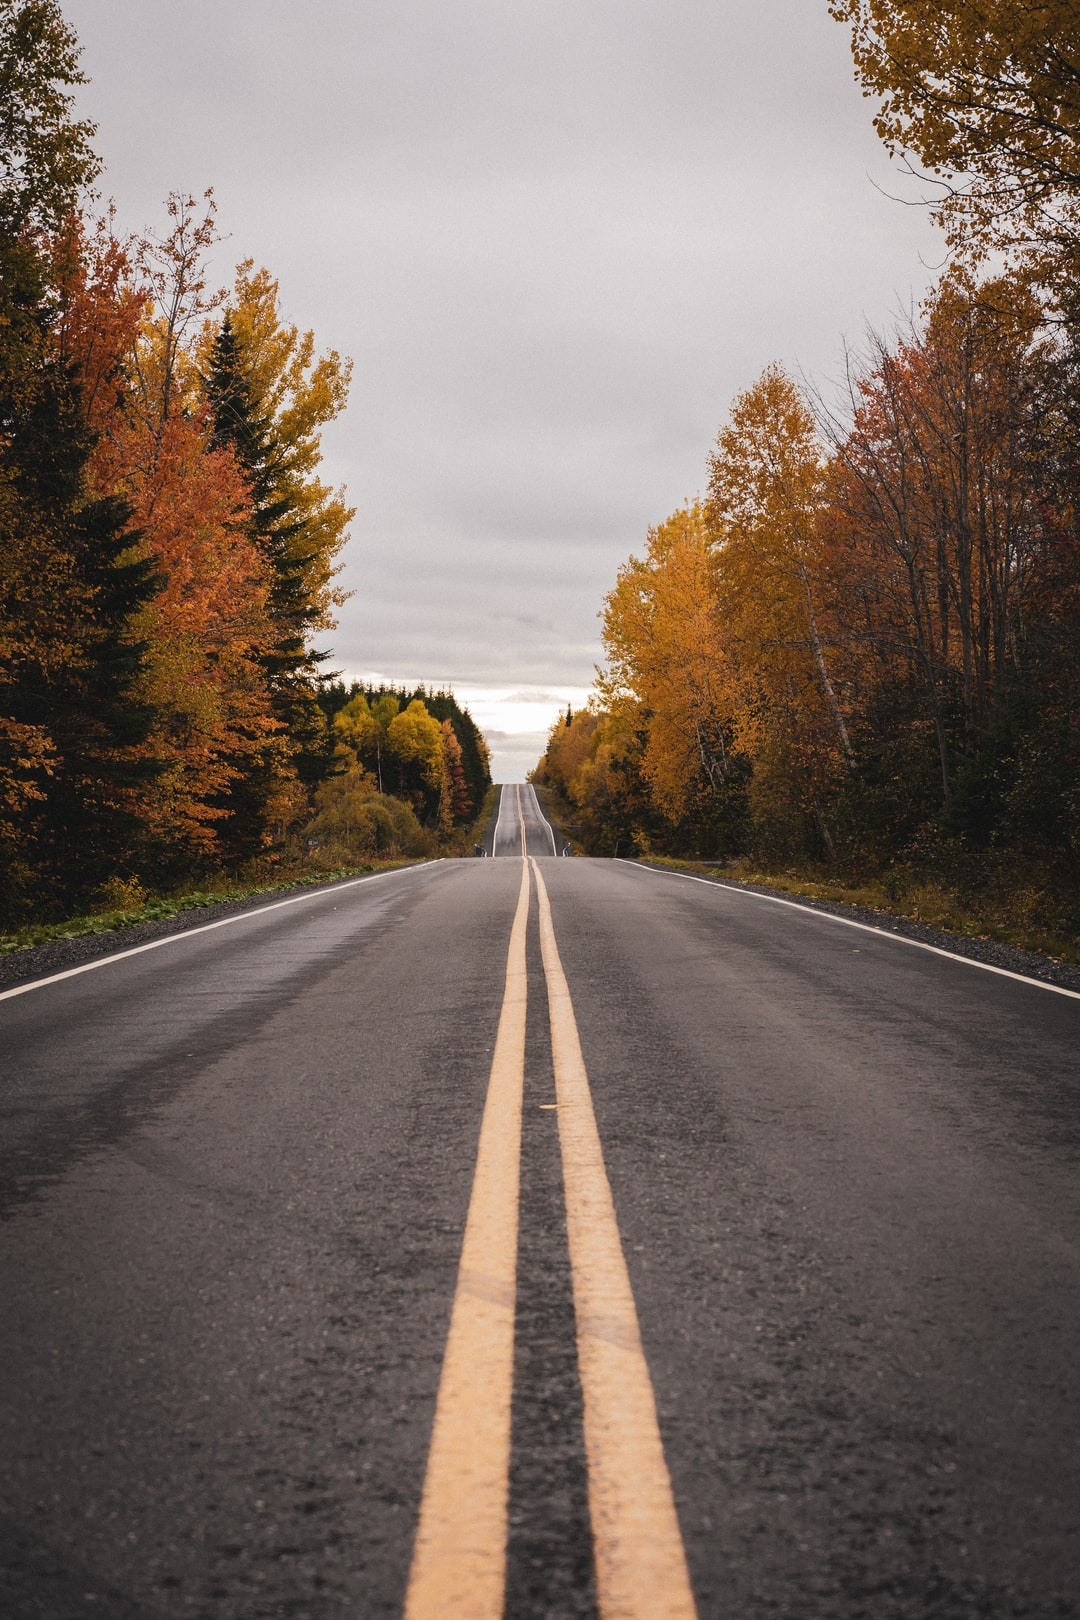 The mythic roads of Canada during the fall. Incredible !